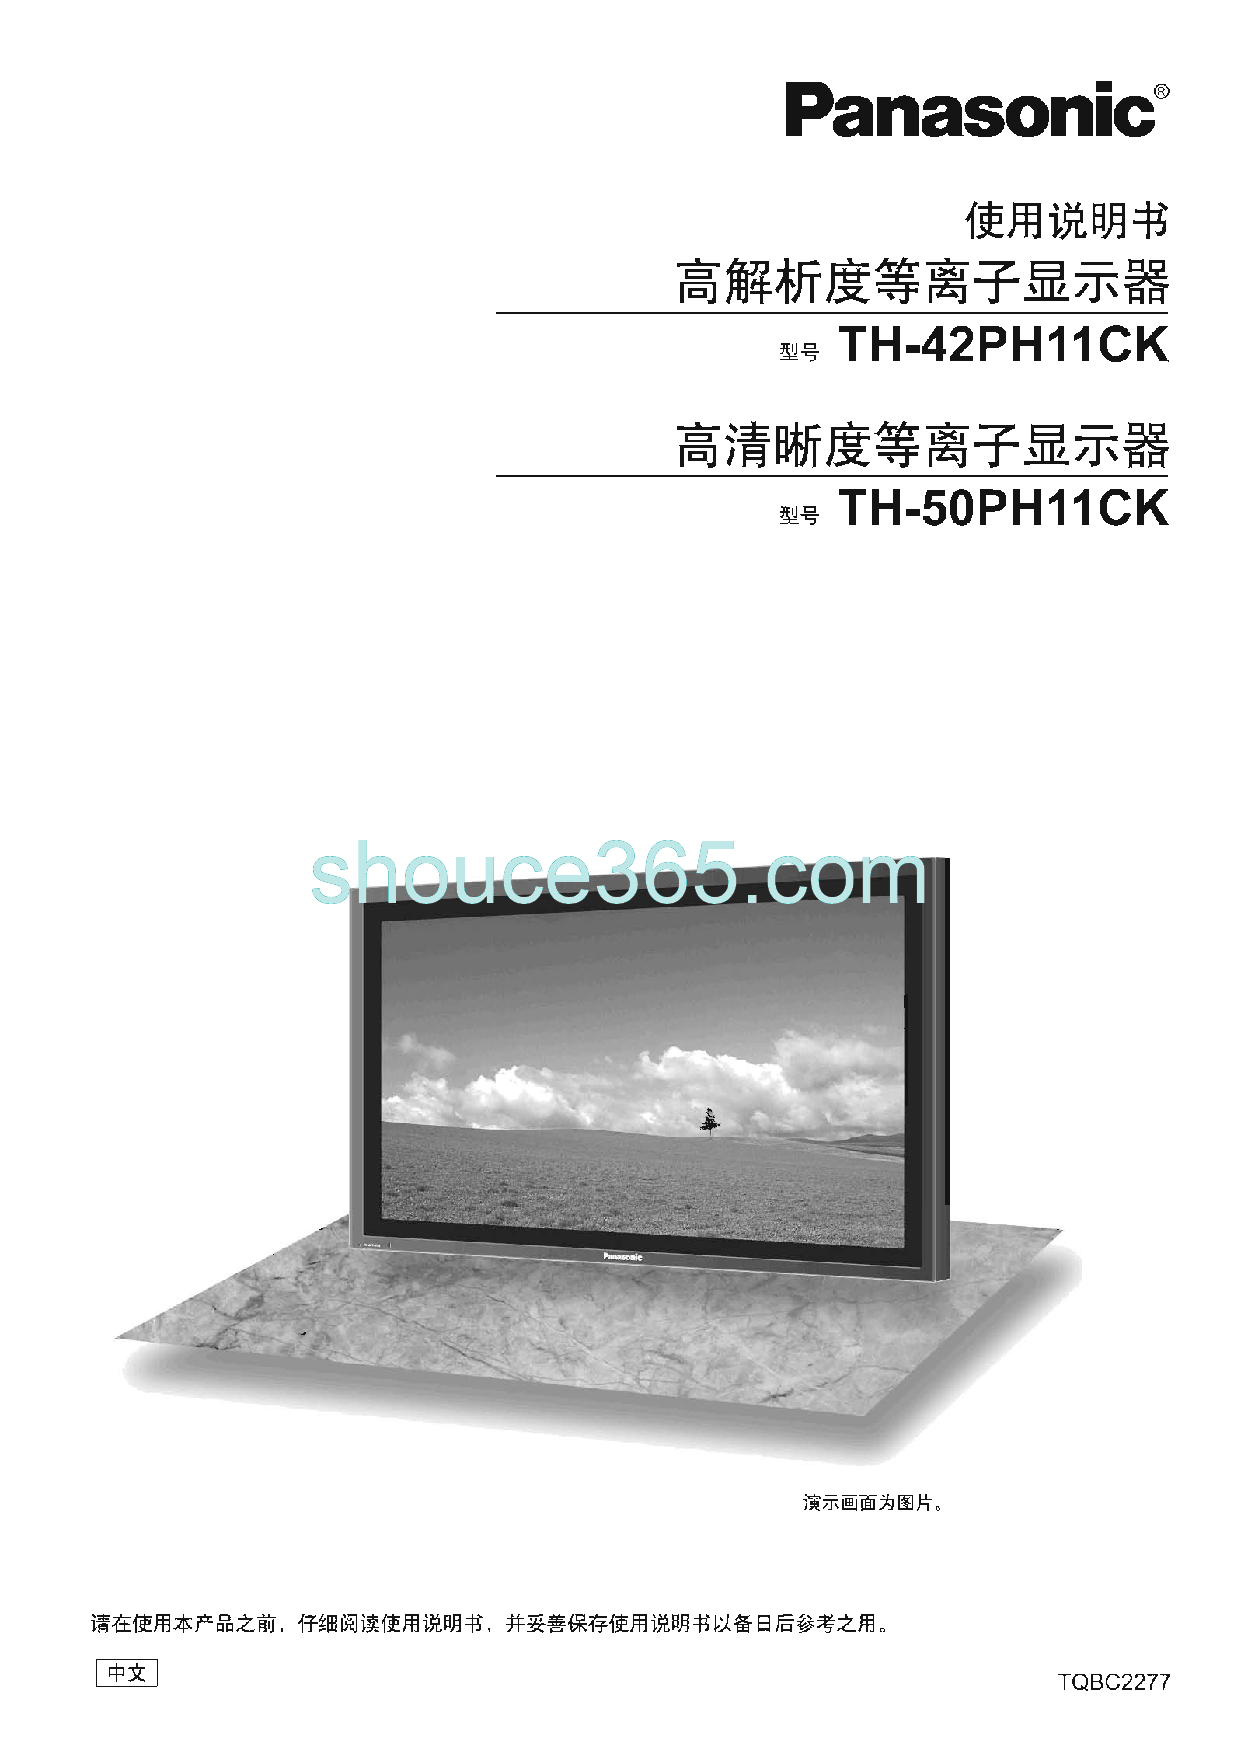 松下 Panasonic TH-42PH11CK 说明书 封面